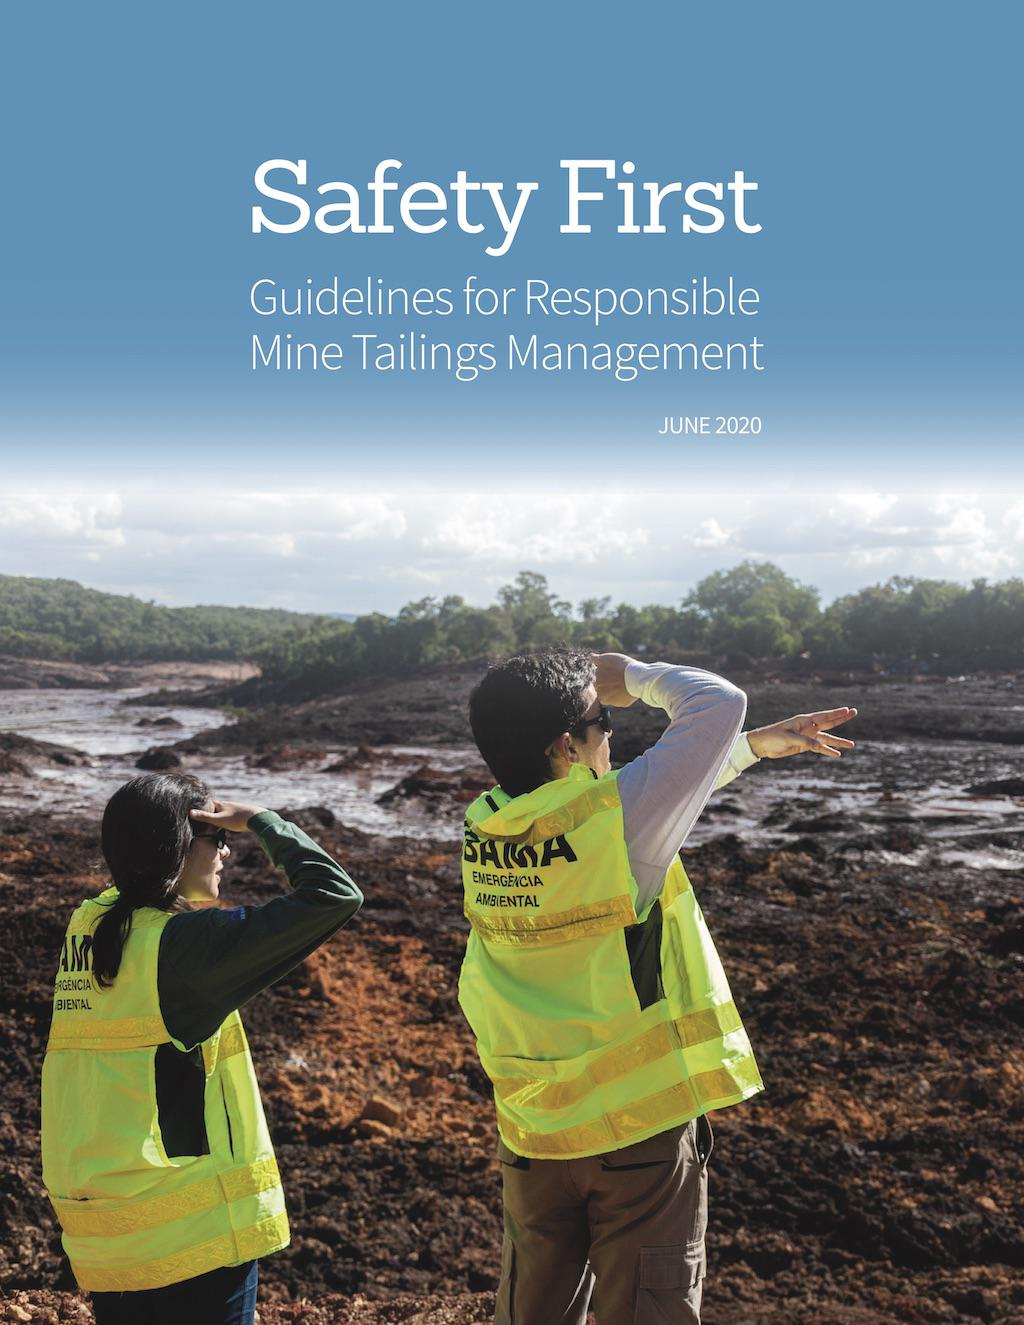 Safety First cover